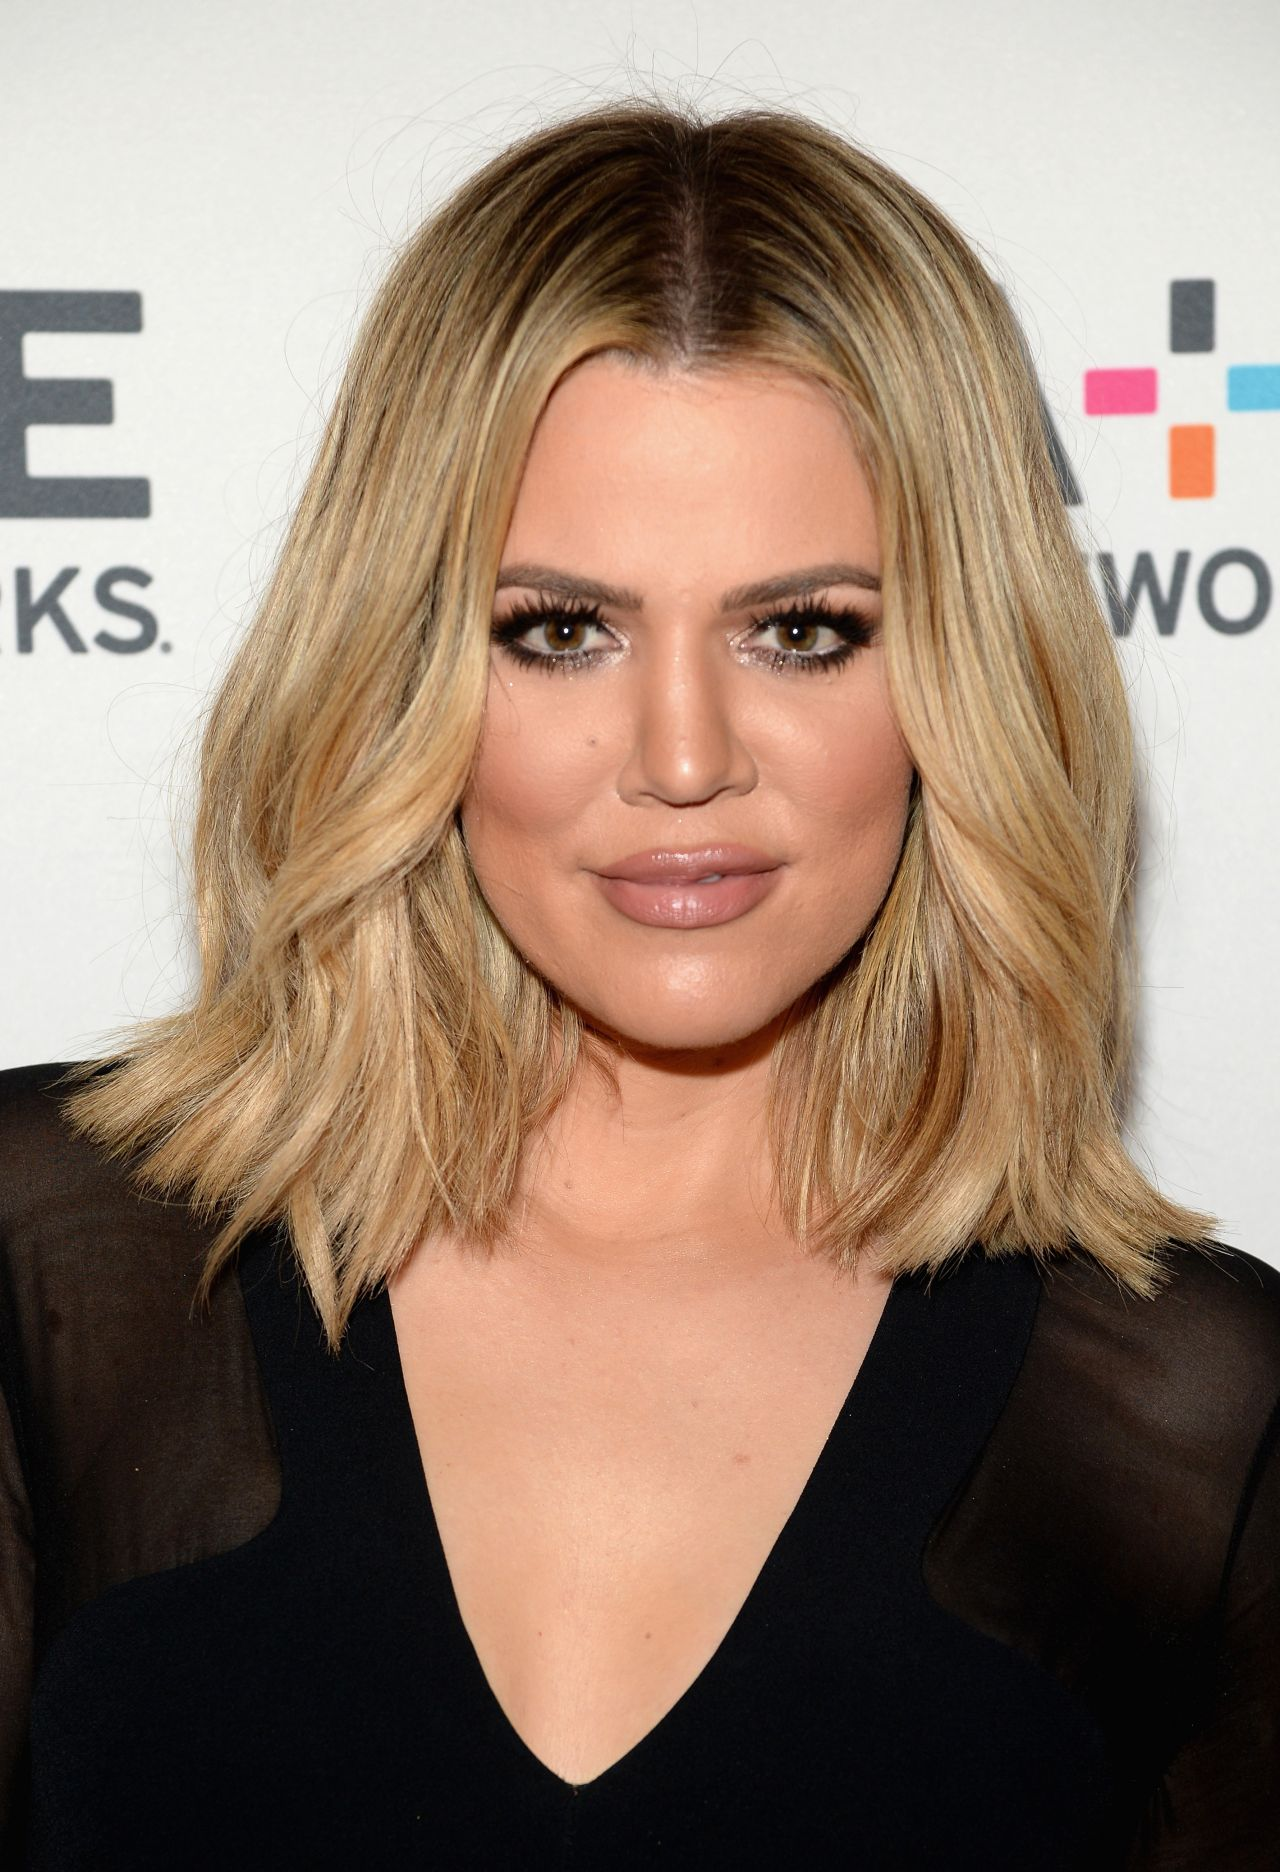 khloe kardashian - photo #32